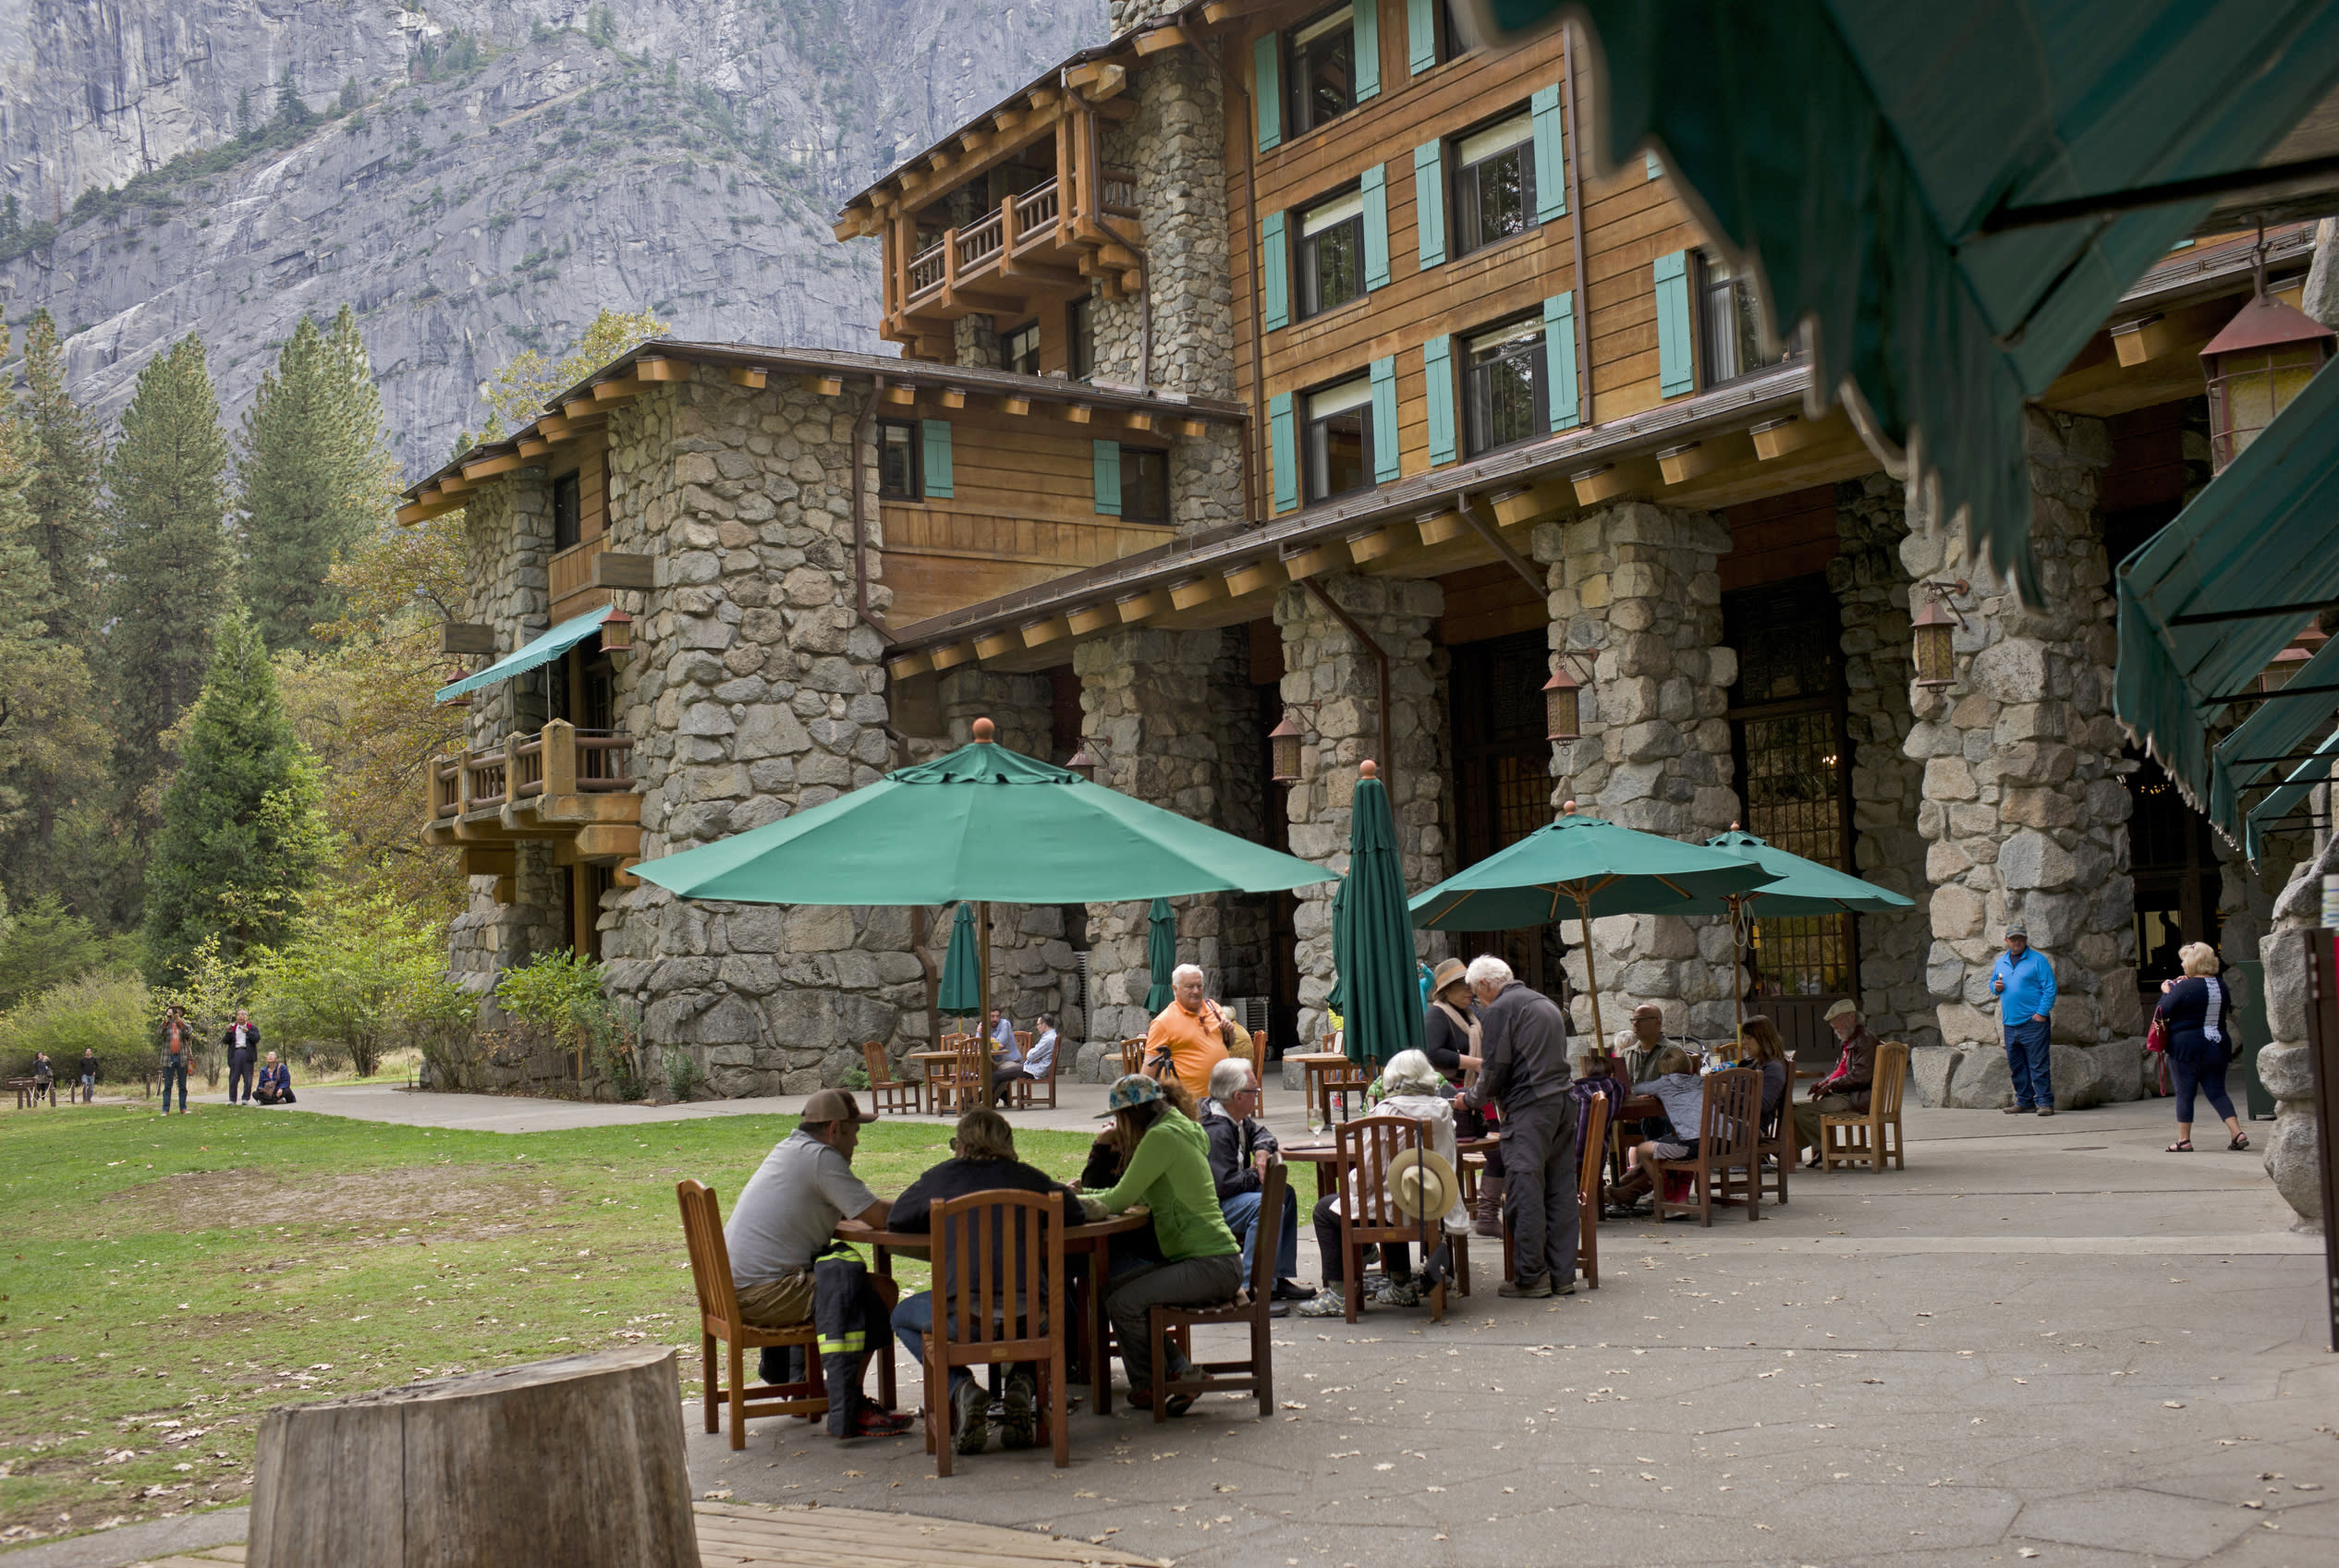 170 people fall ill in possible norovirus outbreak in Yosemite National Park